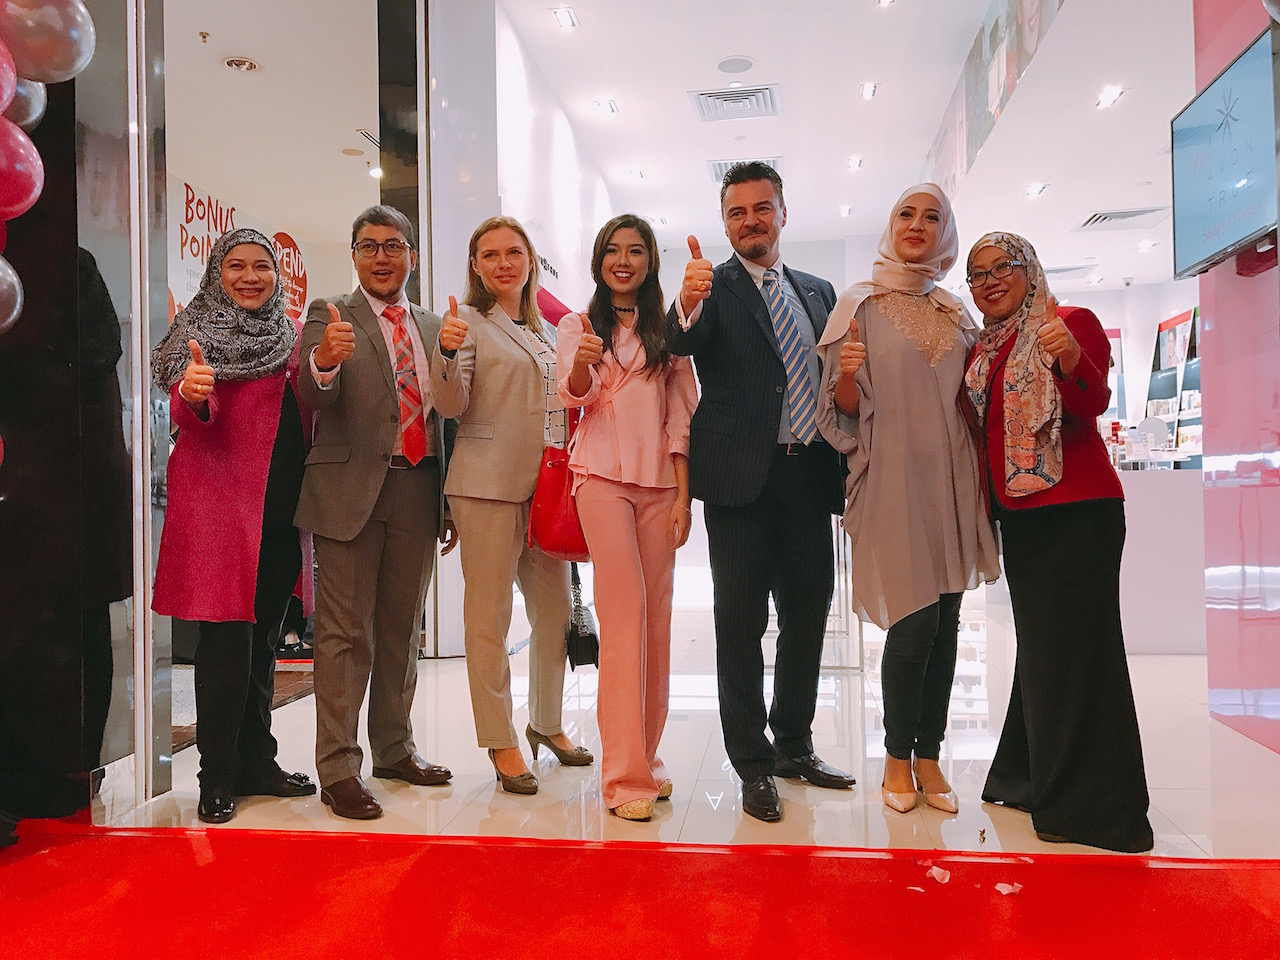 AVON Set Up 1st Flagship Beauty Store at Berjaya Times Square Shopping Mall In Conjunction With Its 40th Anniversary | Pamper.My